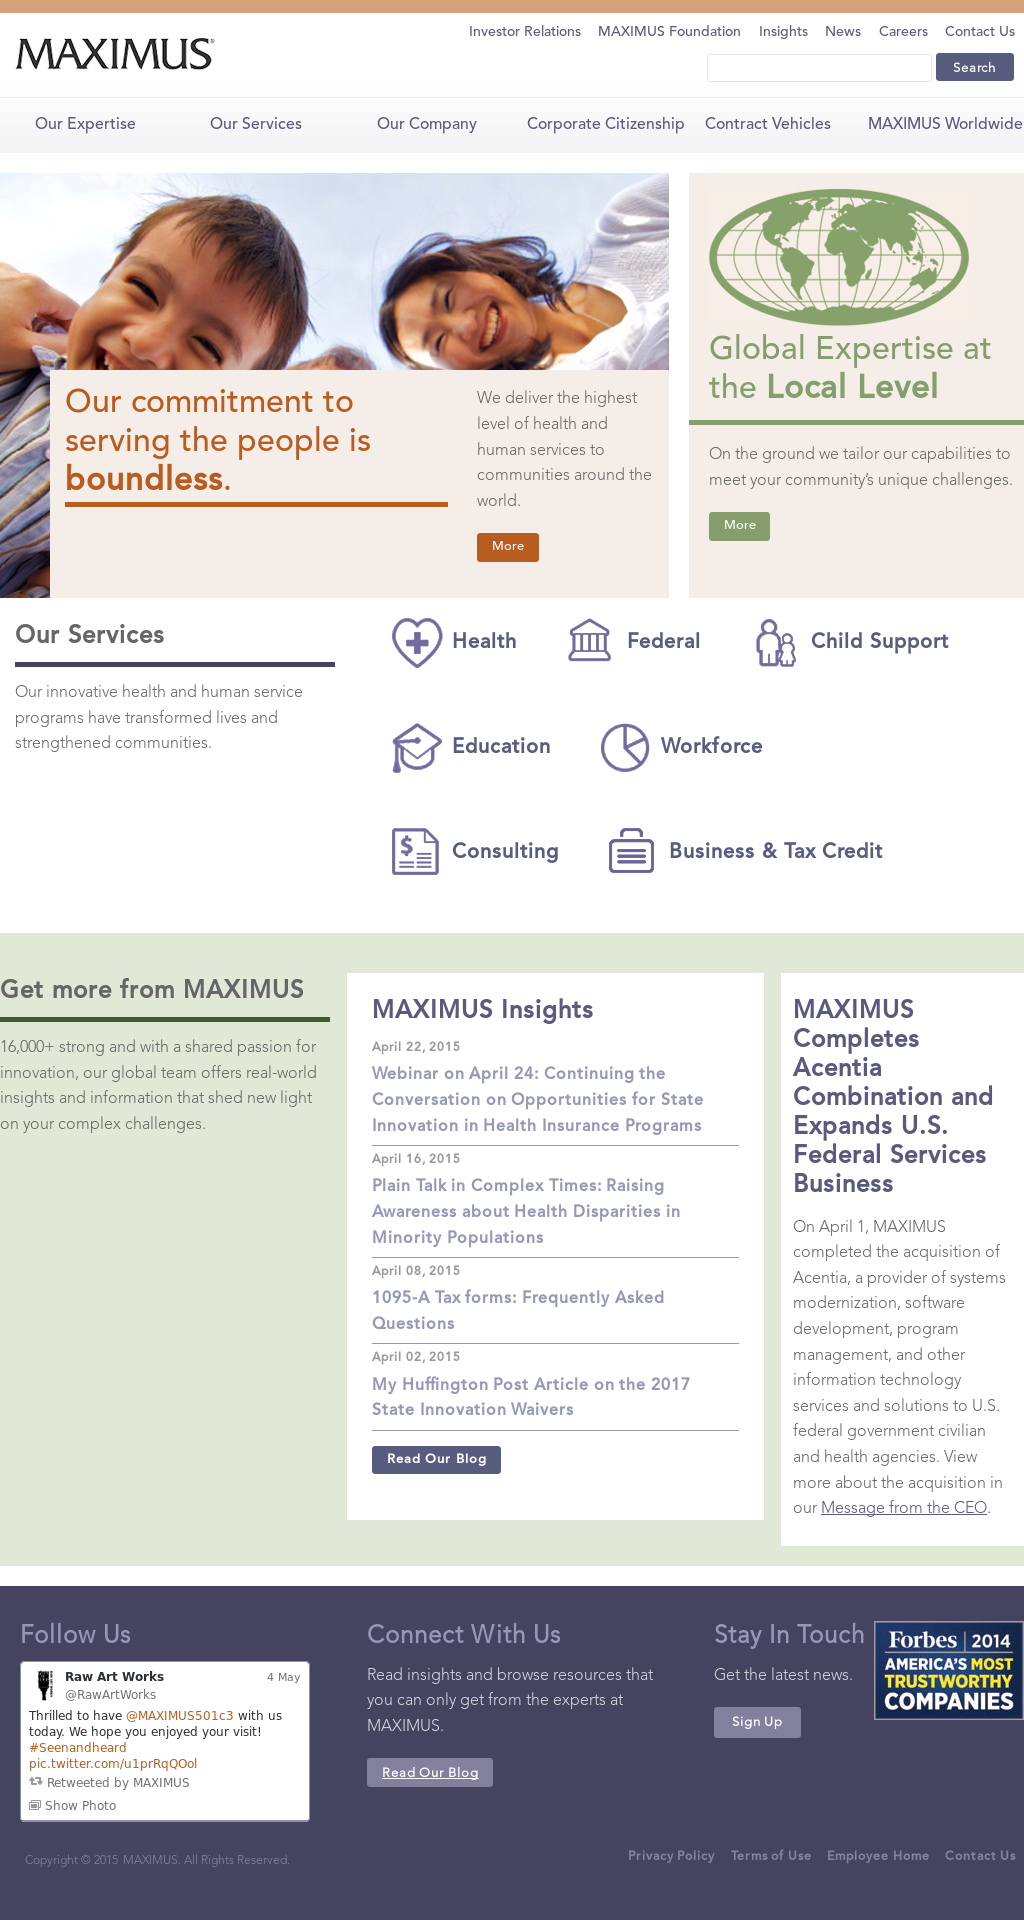 Maximus Competitors, Revenue and Employees - Owler Company Profile